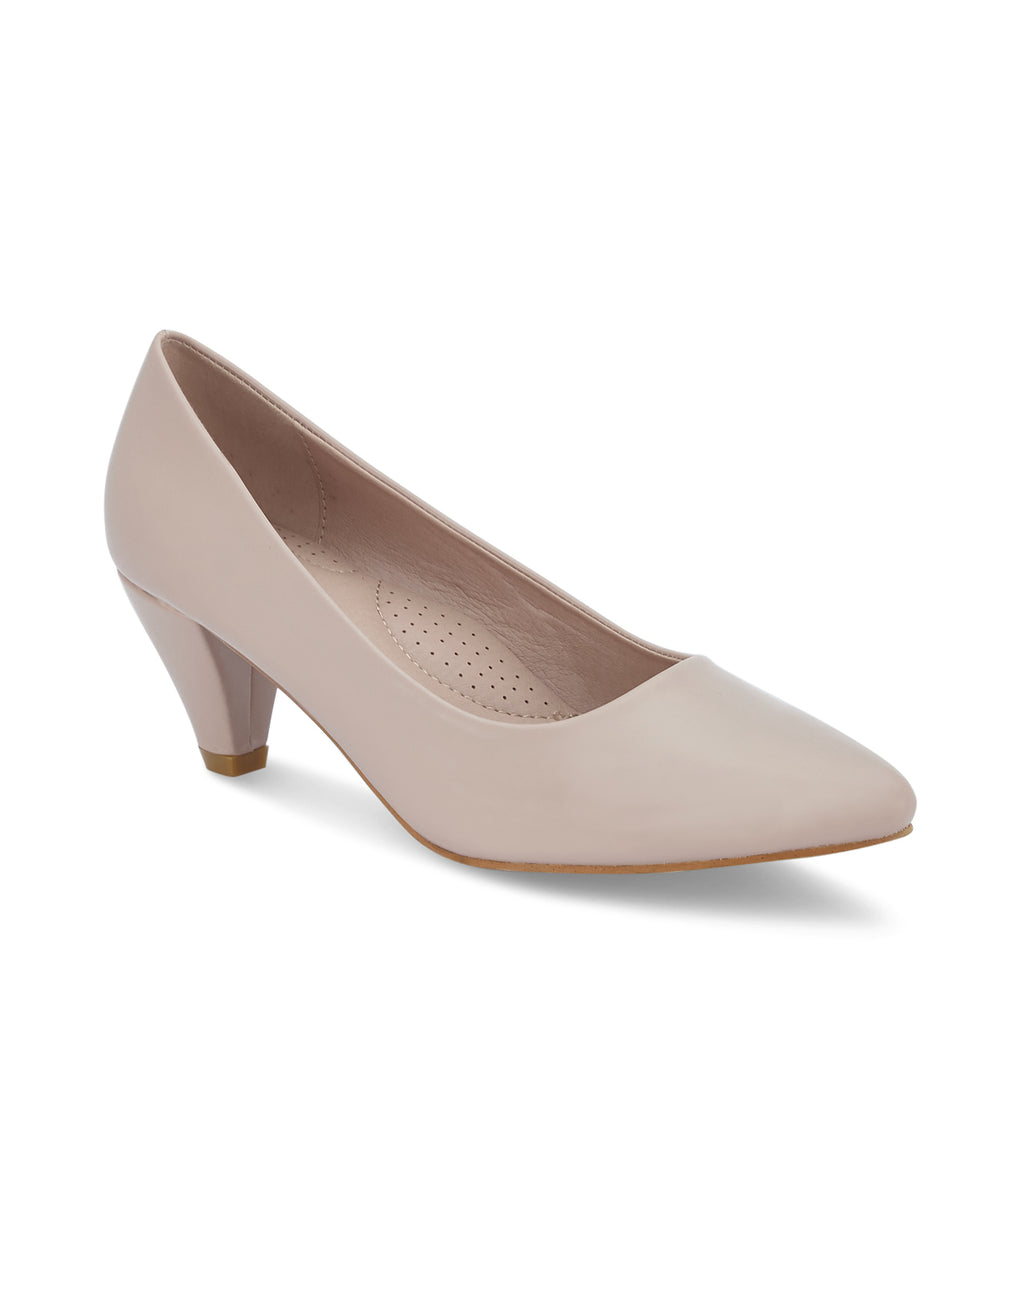 Renee Nude Pointed-Toe Pumps